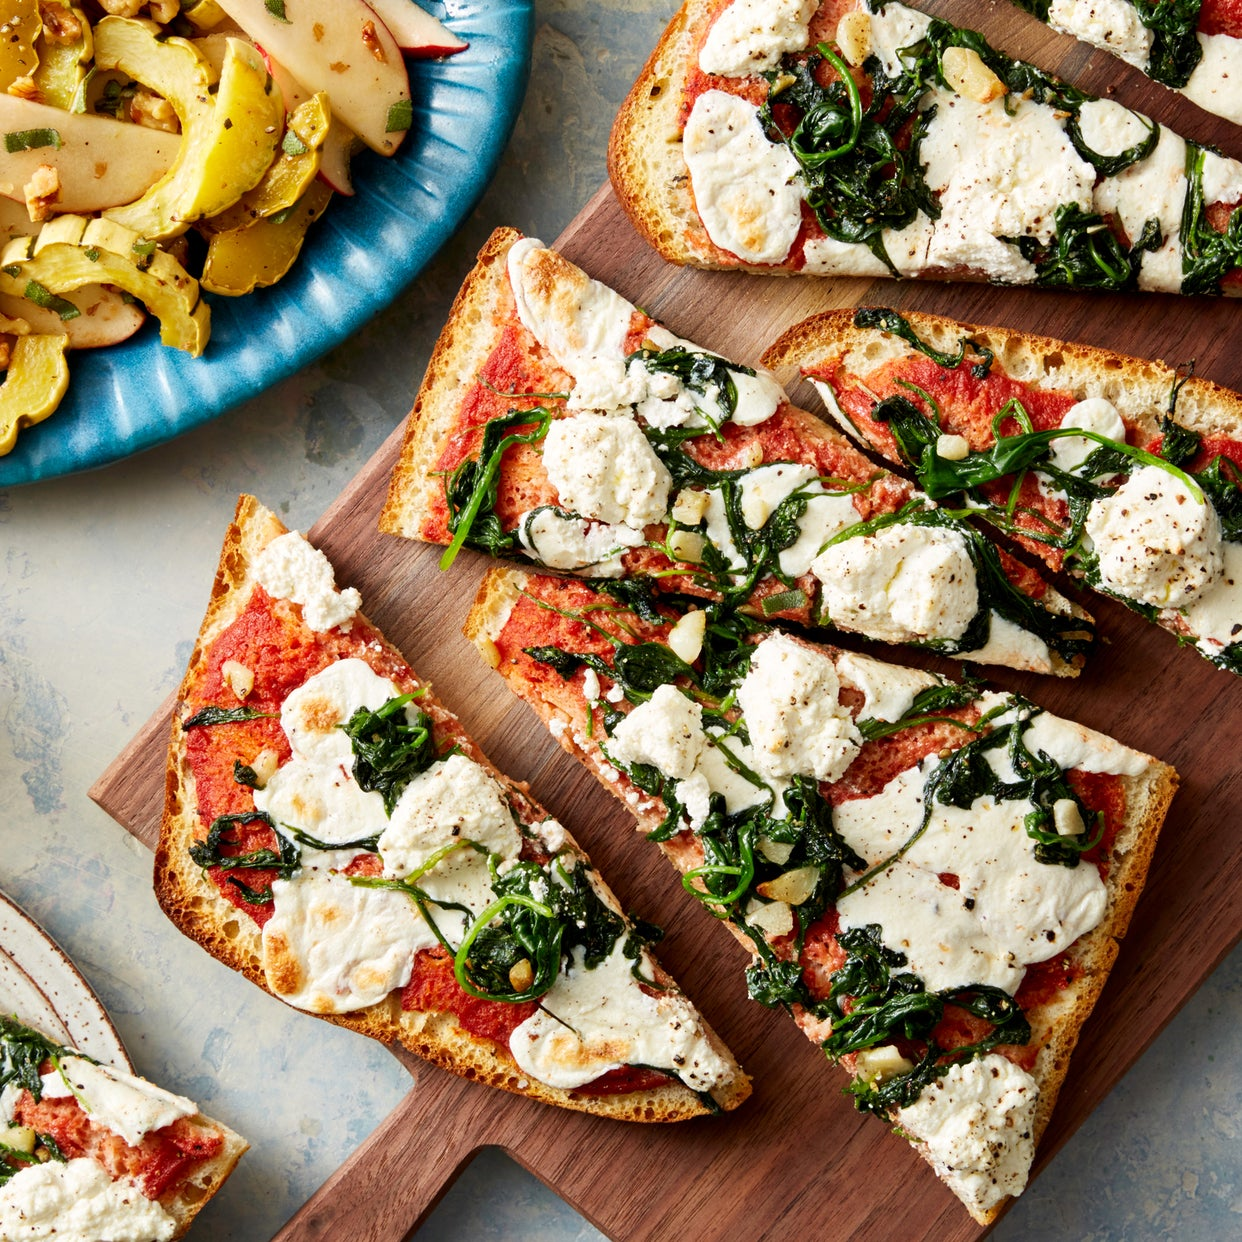 Spinach & Two-Cheese Focaccia Pizzas with Maple-Roasted Squash & Apple Salad